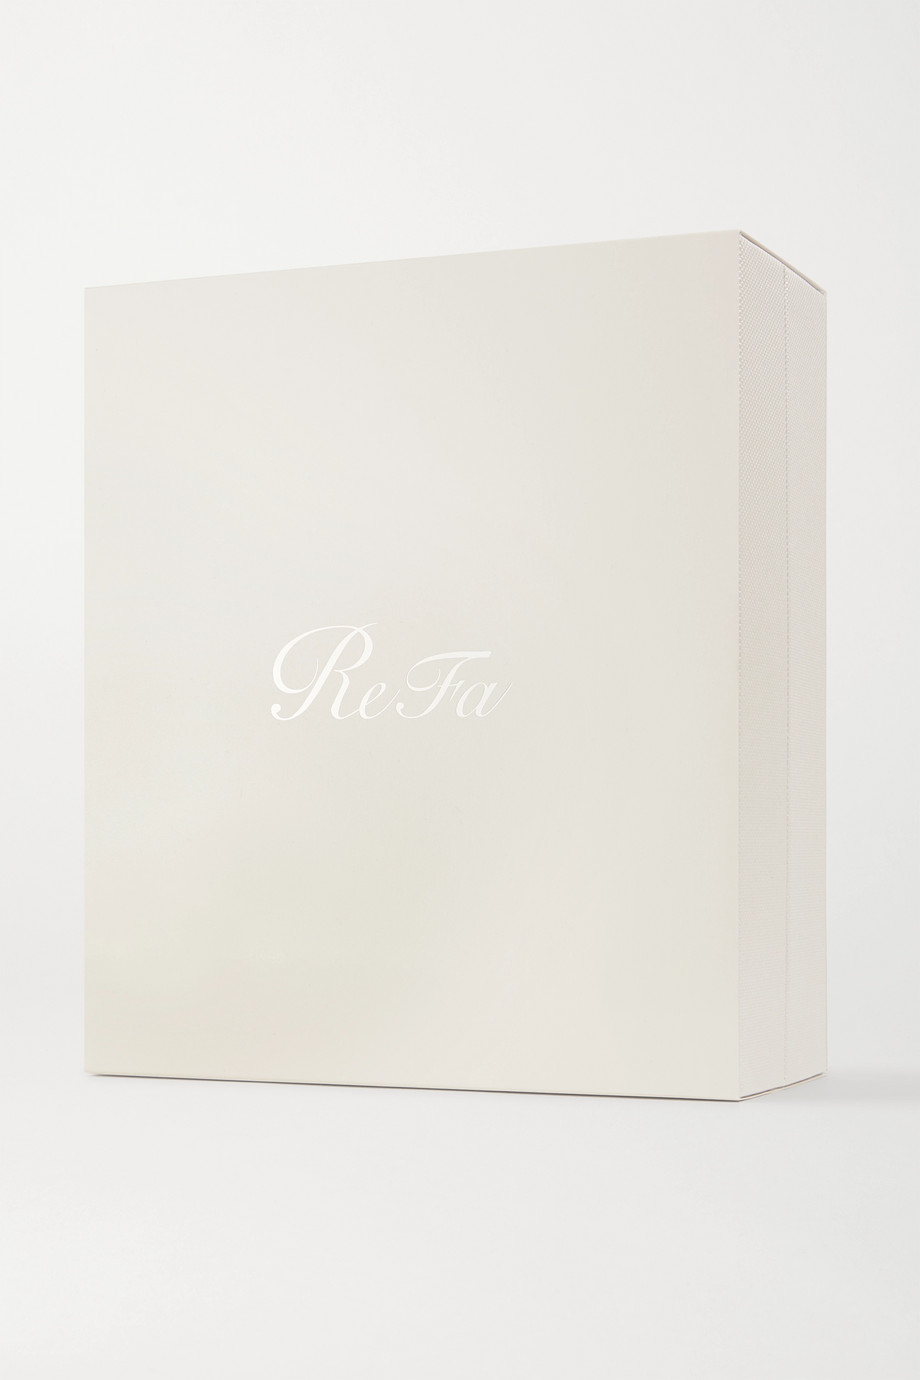 REFA CARAT RAY Face and Body Roller